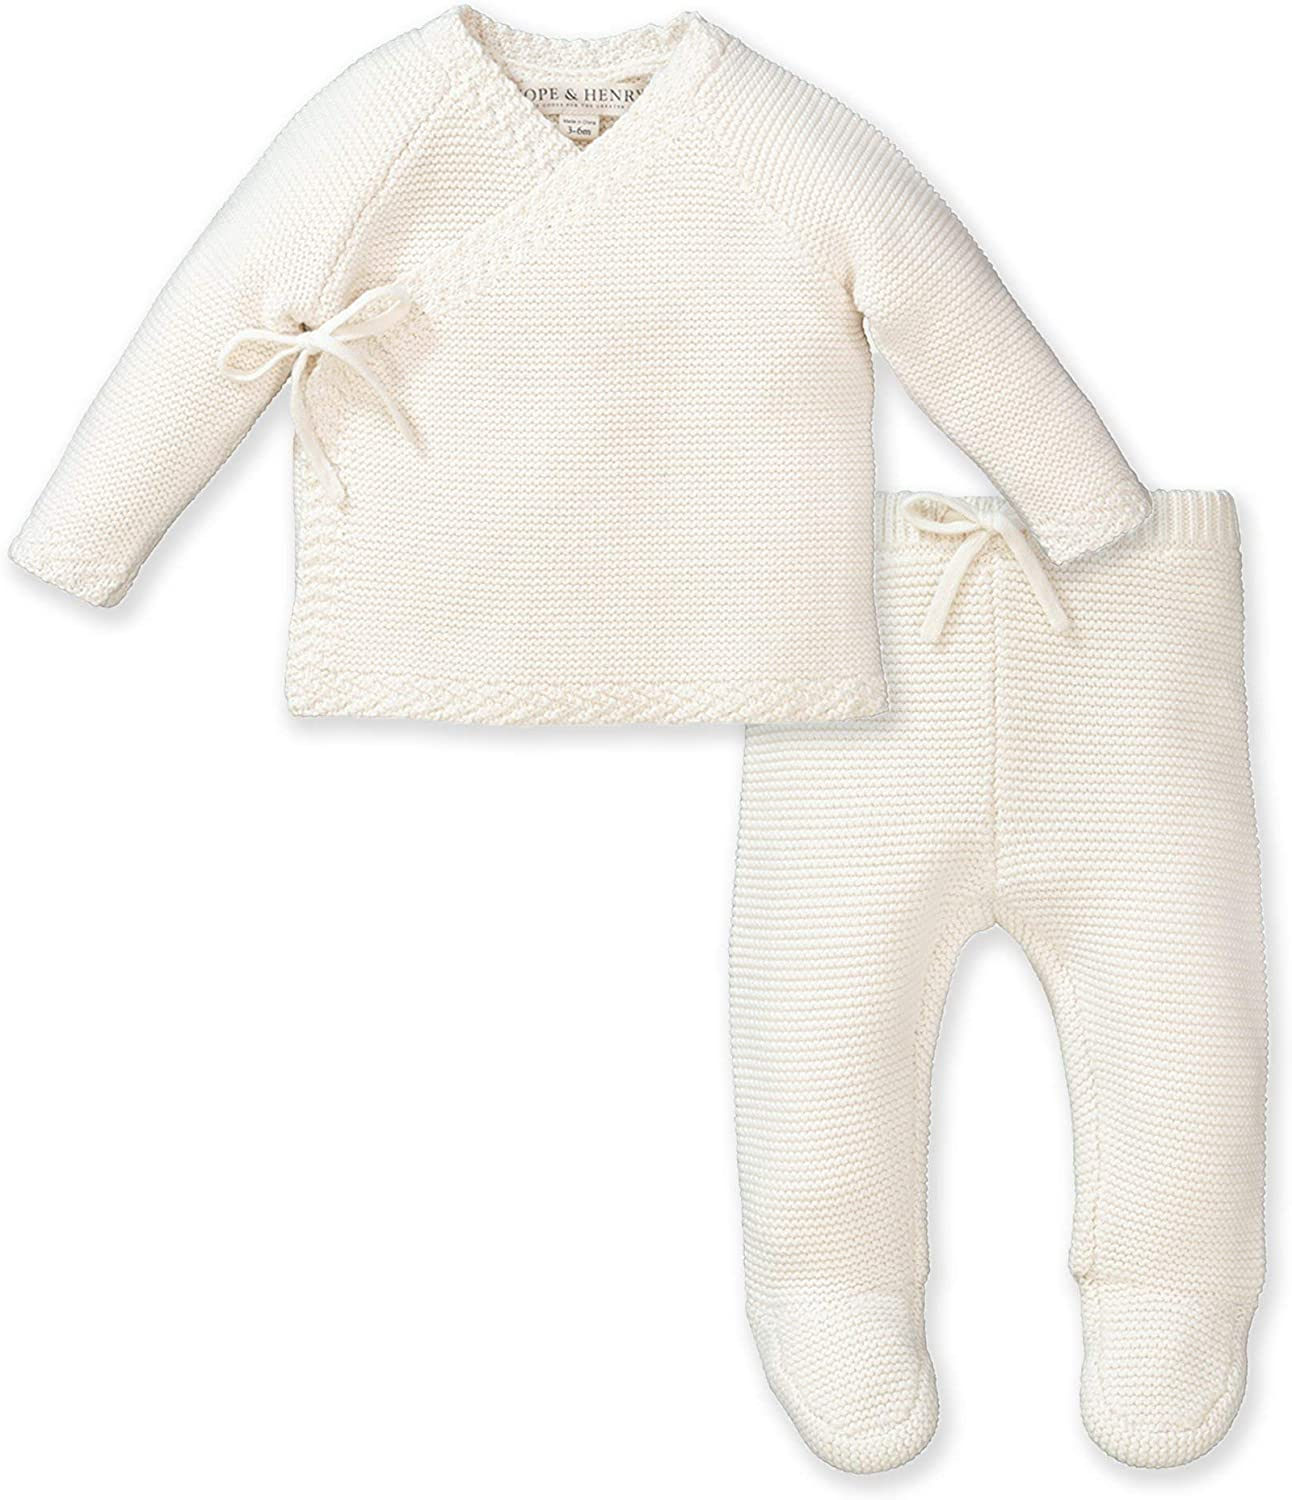 Hope Henry Layette Max 78% OFF Price reduction Kimono Tie Sweater Legging 2-Pie and Footed